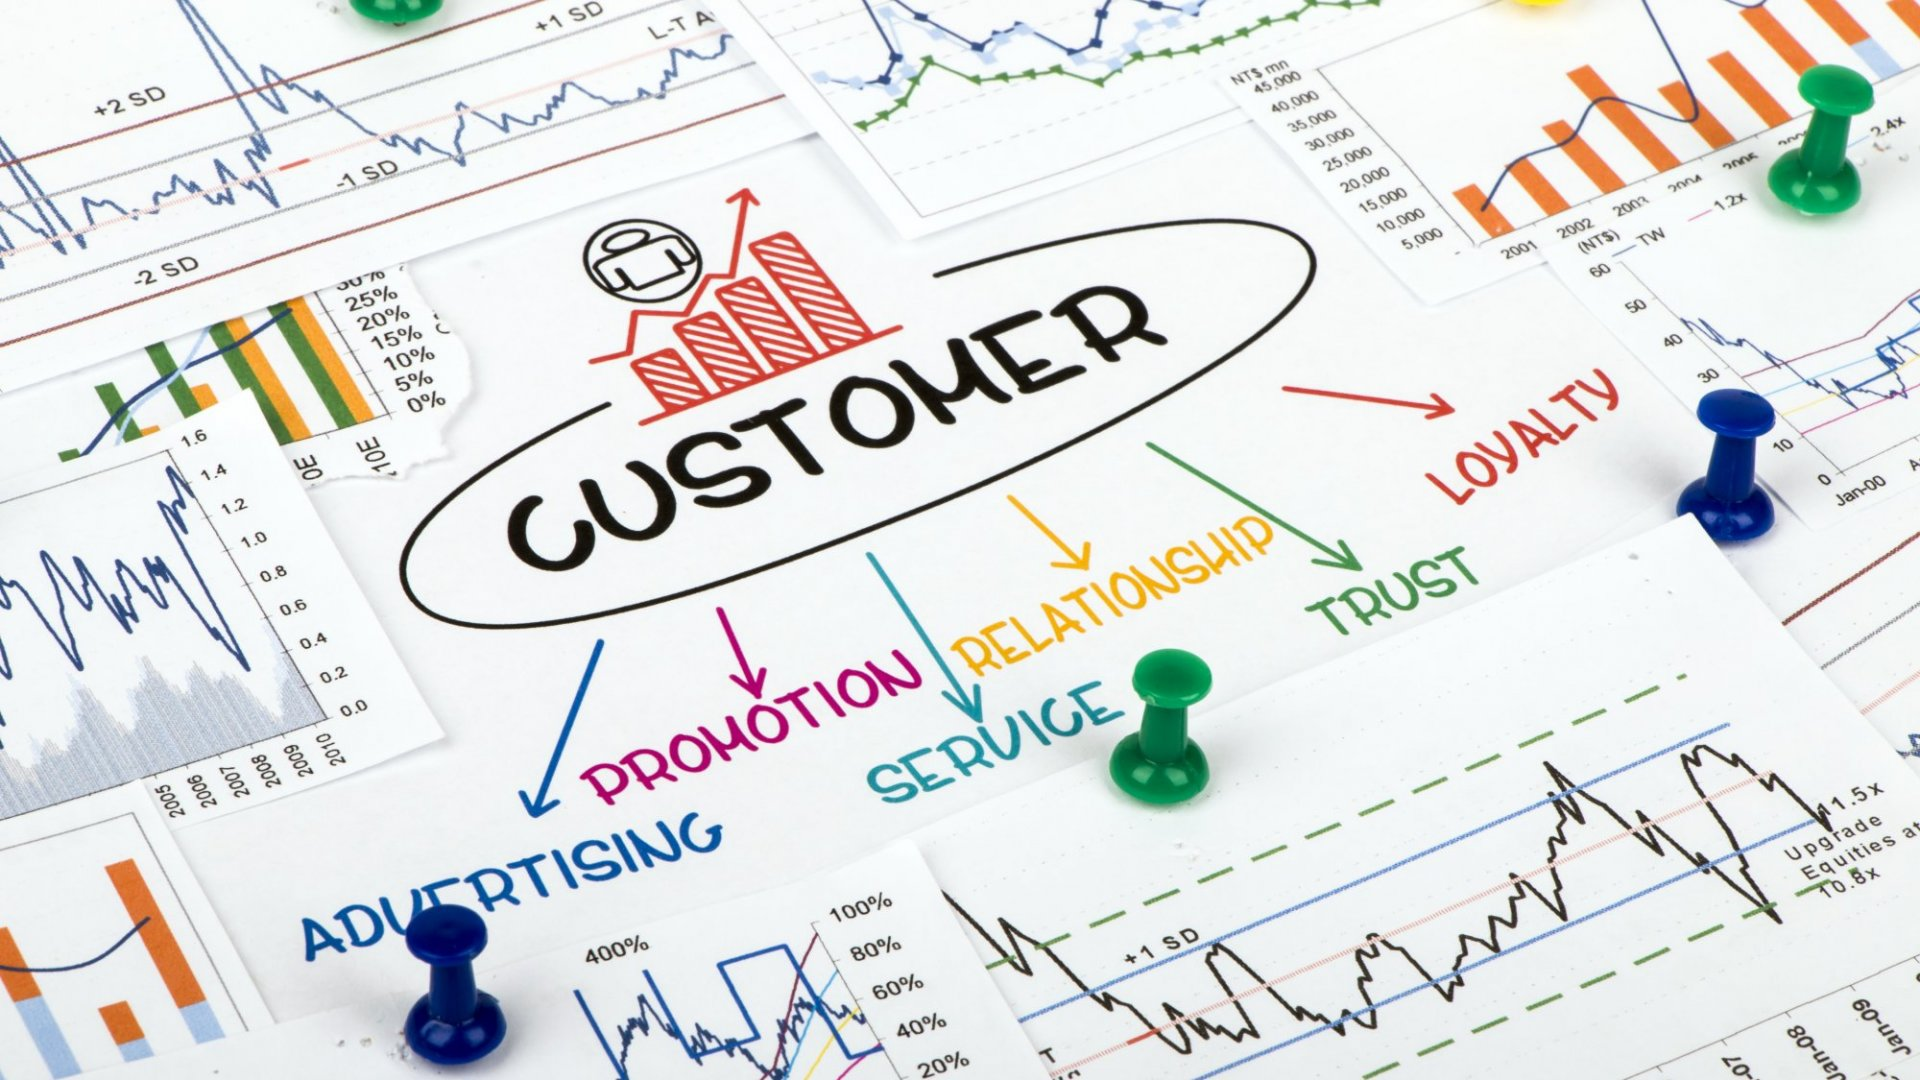 Why The Best Marketing Dollars Are Spent Improving the Customer Experience